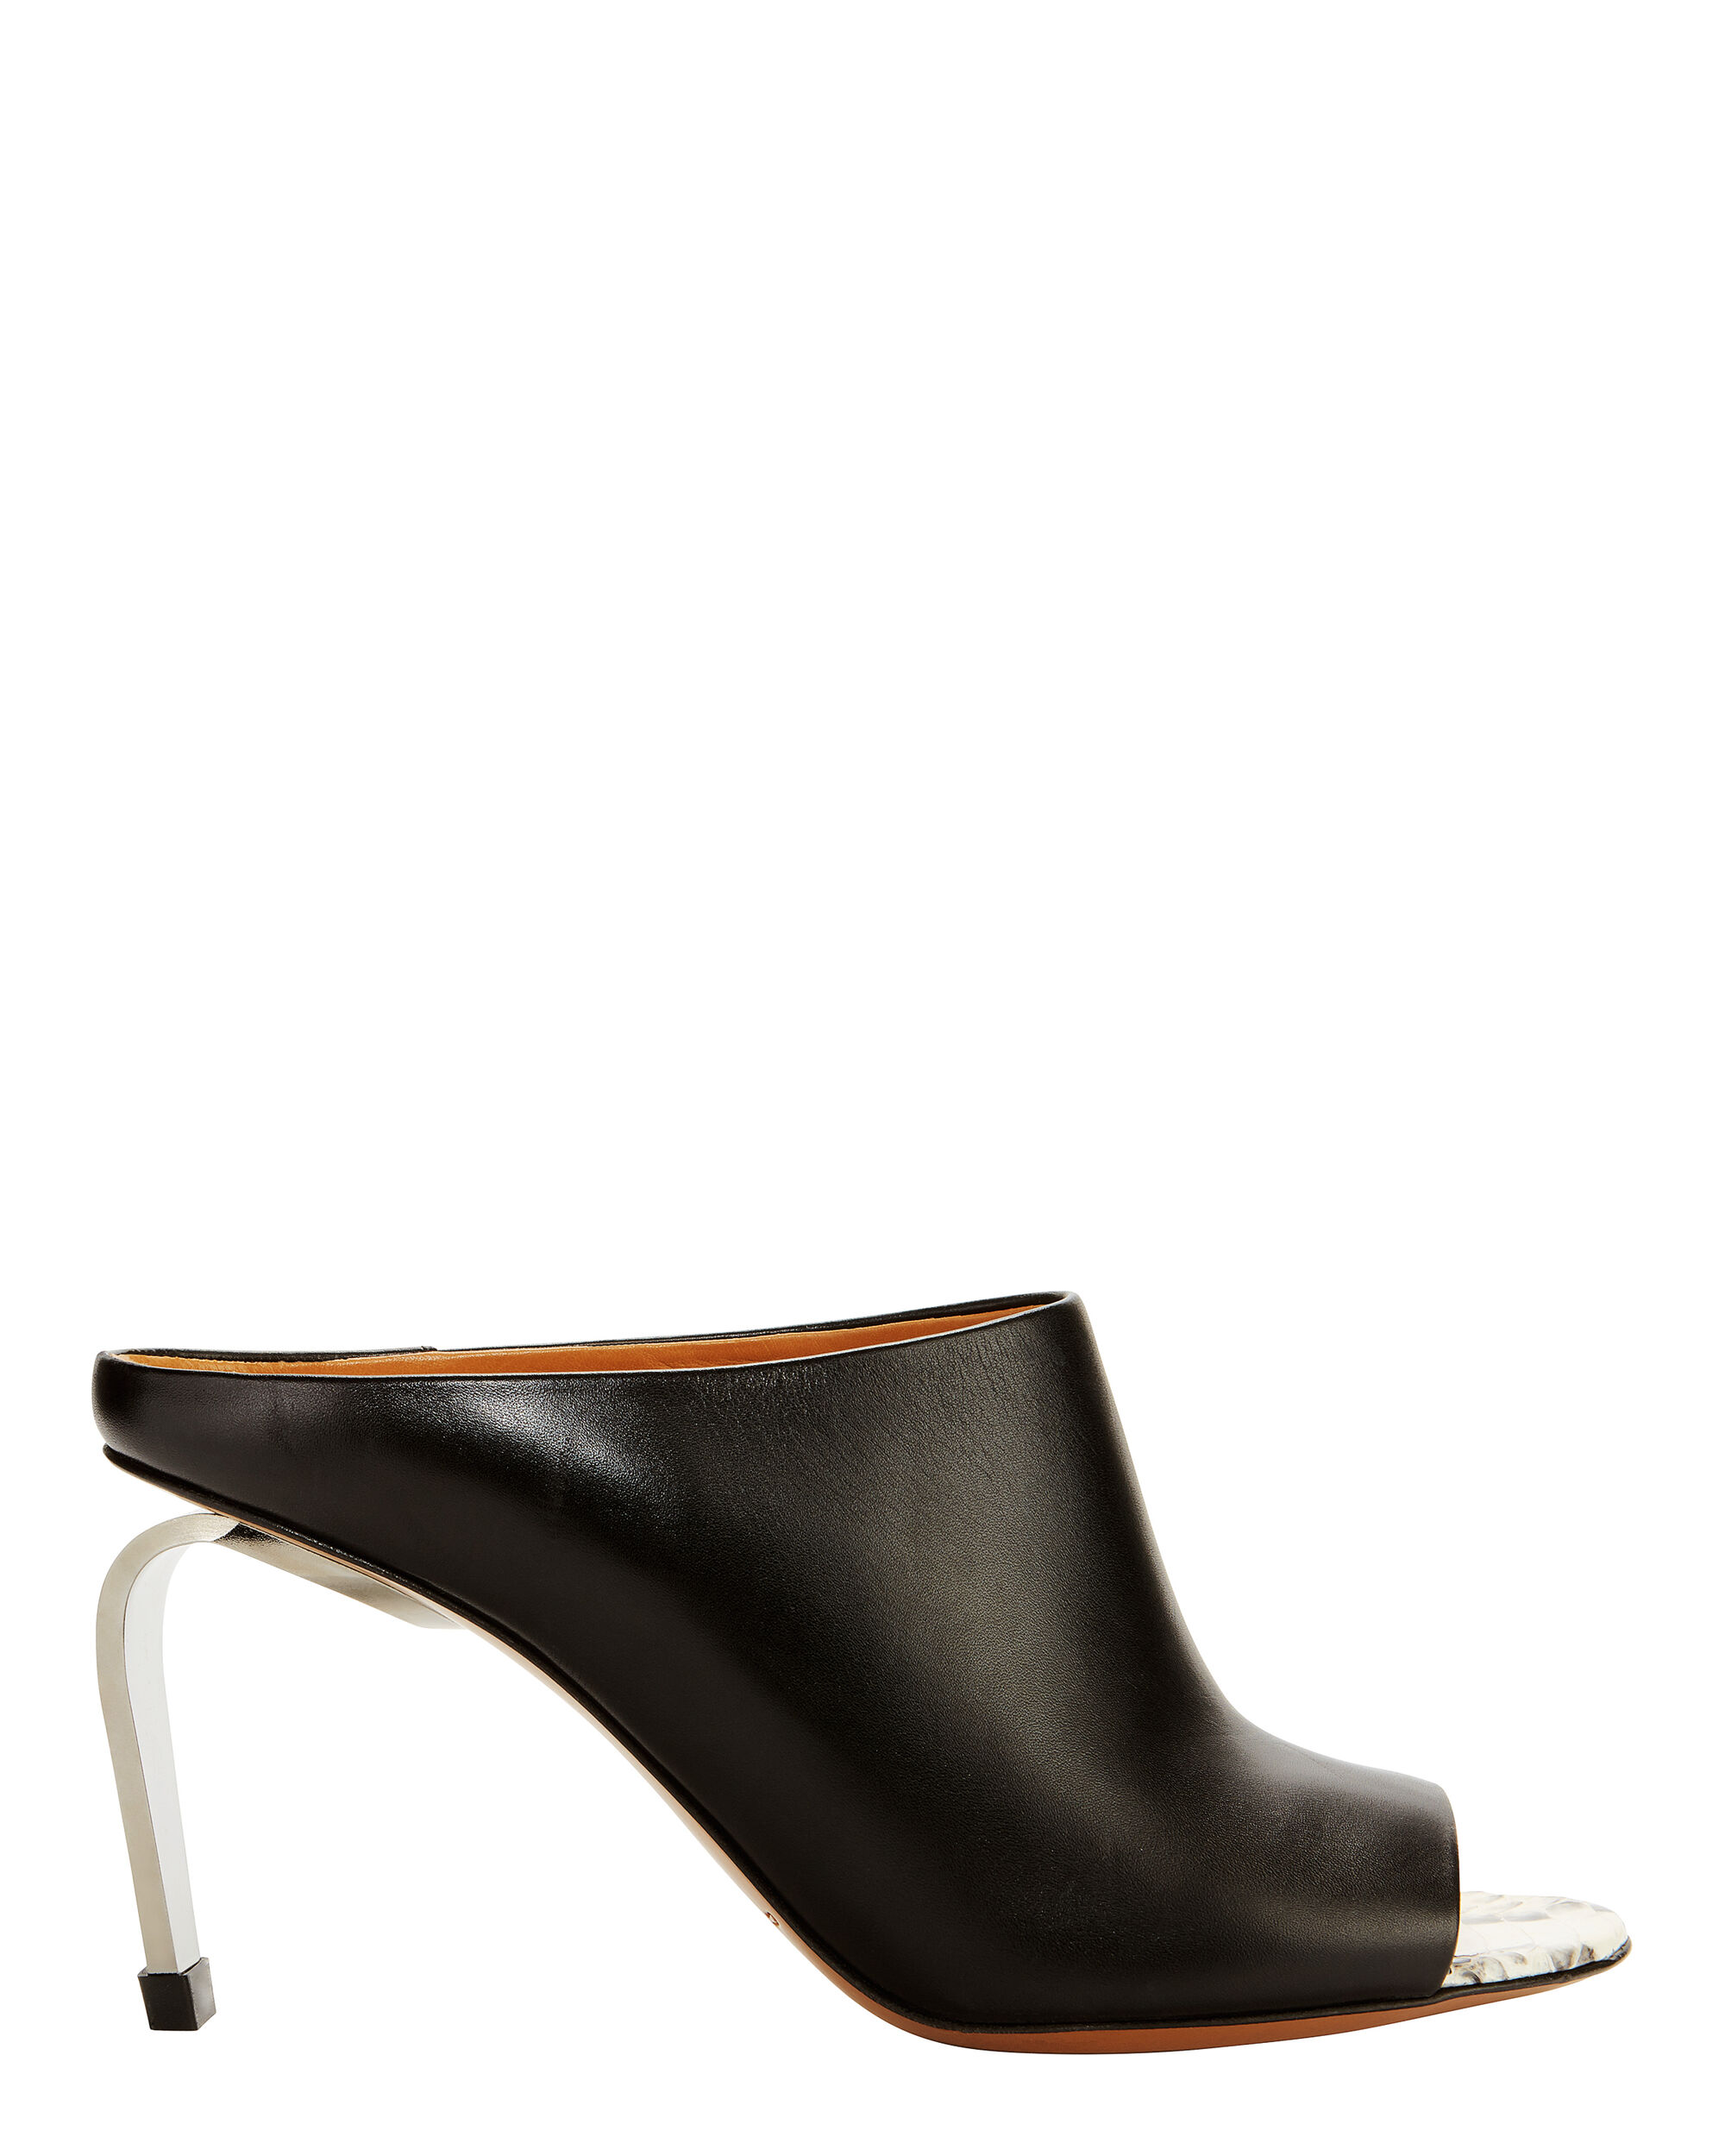 Maevaw Leather Mules